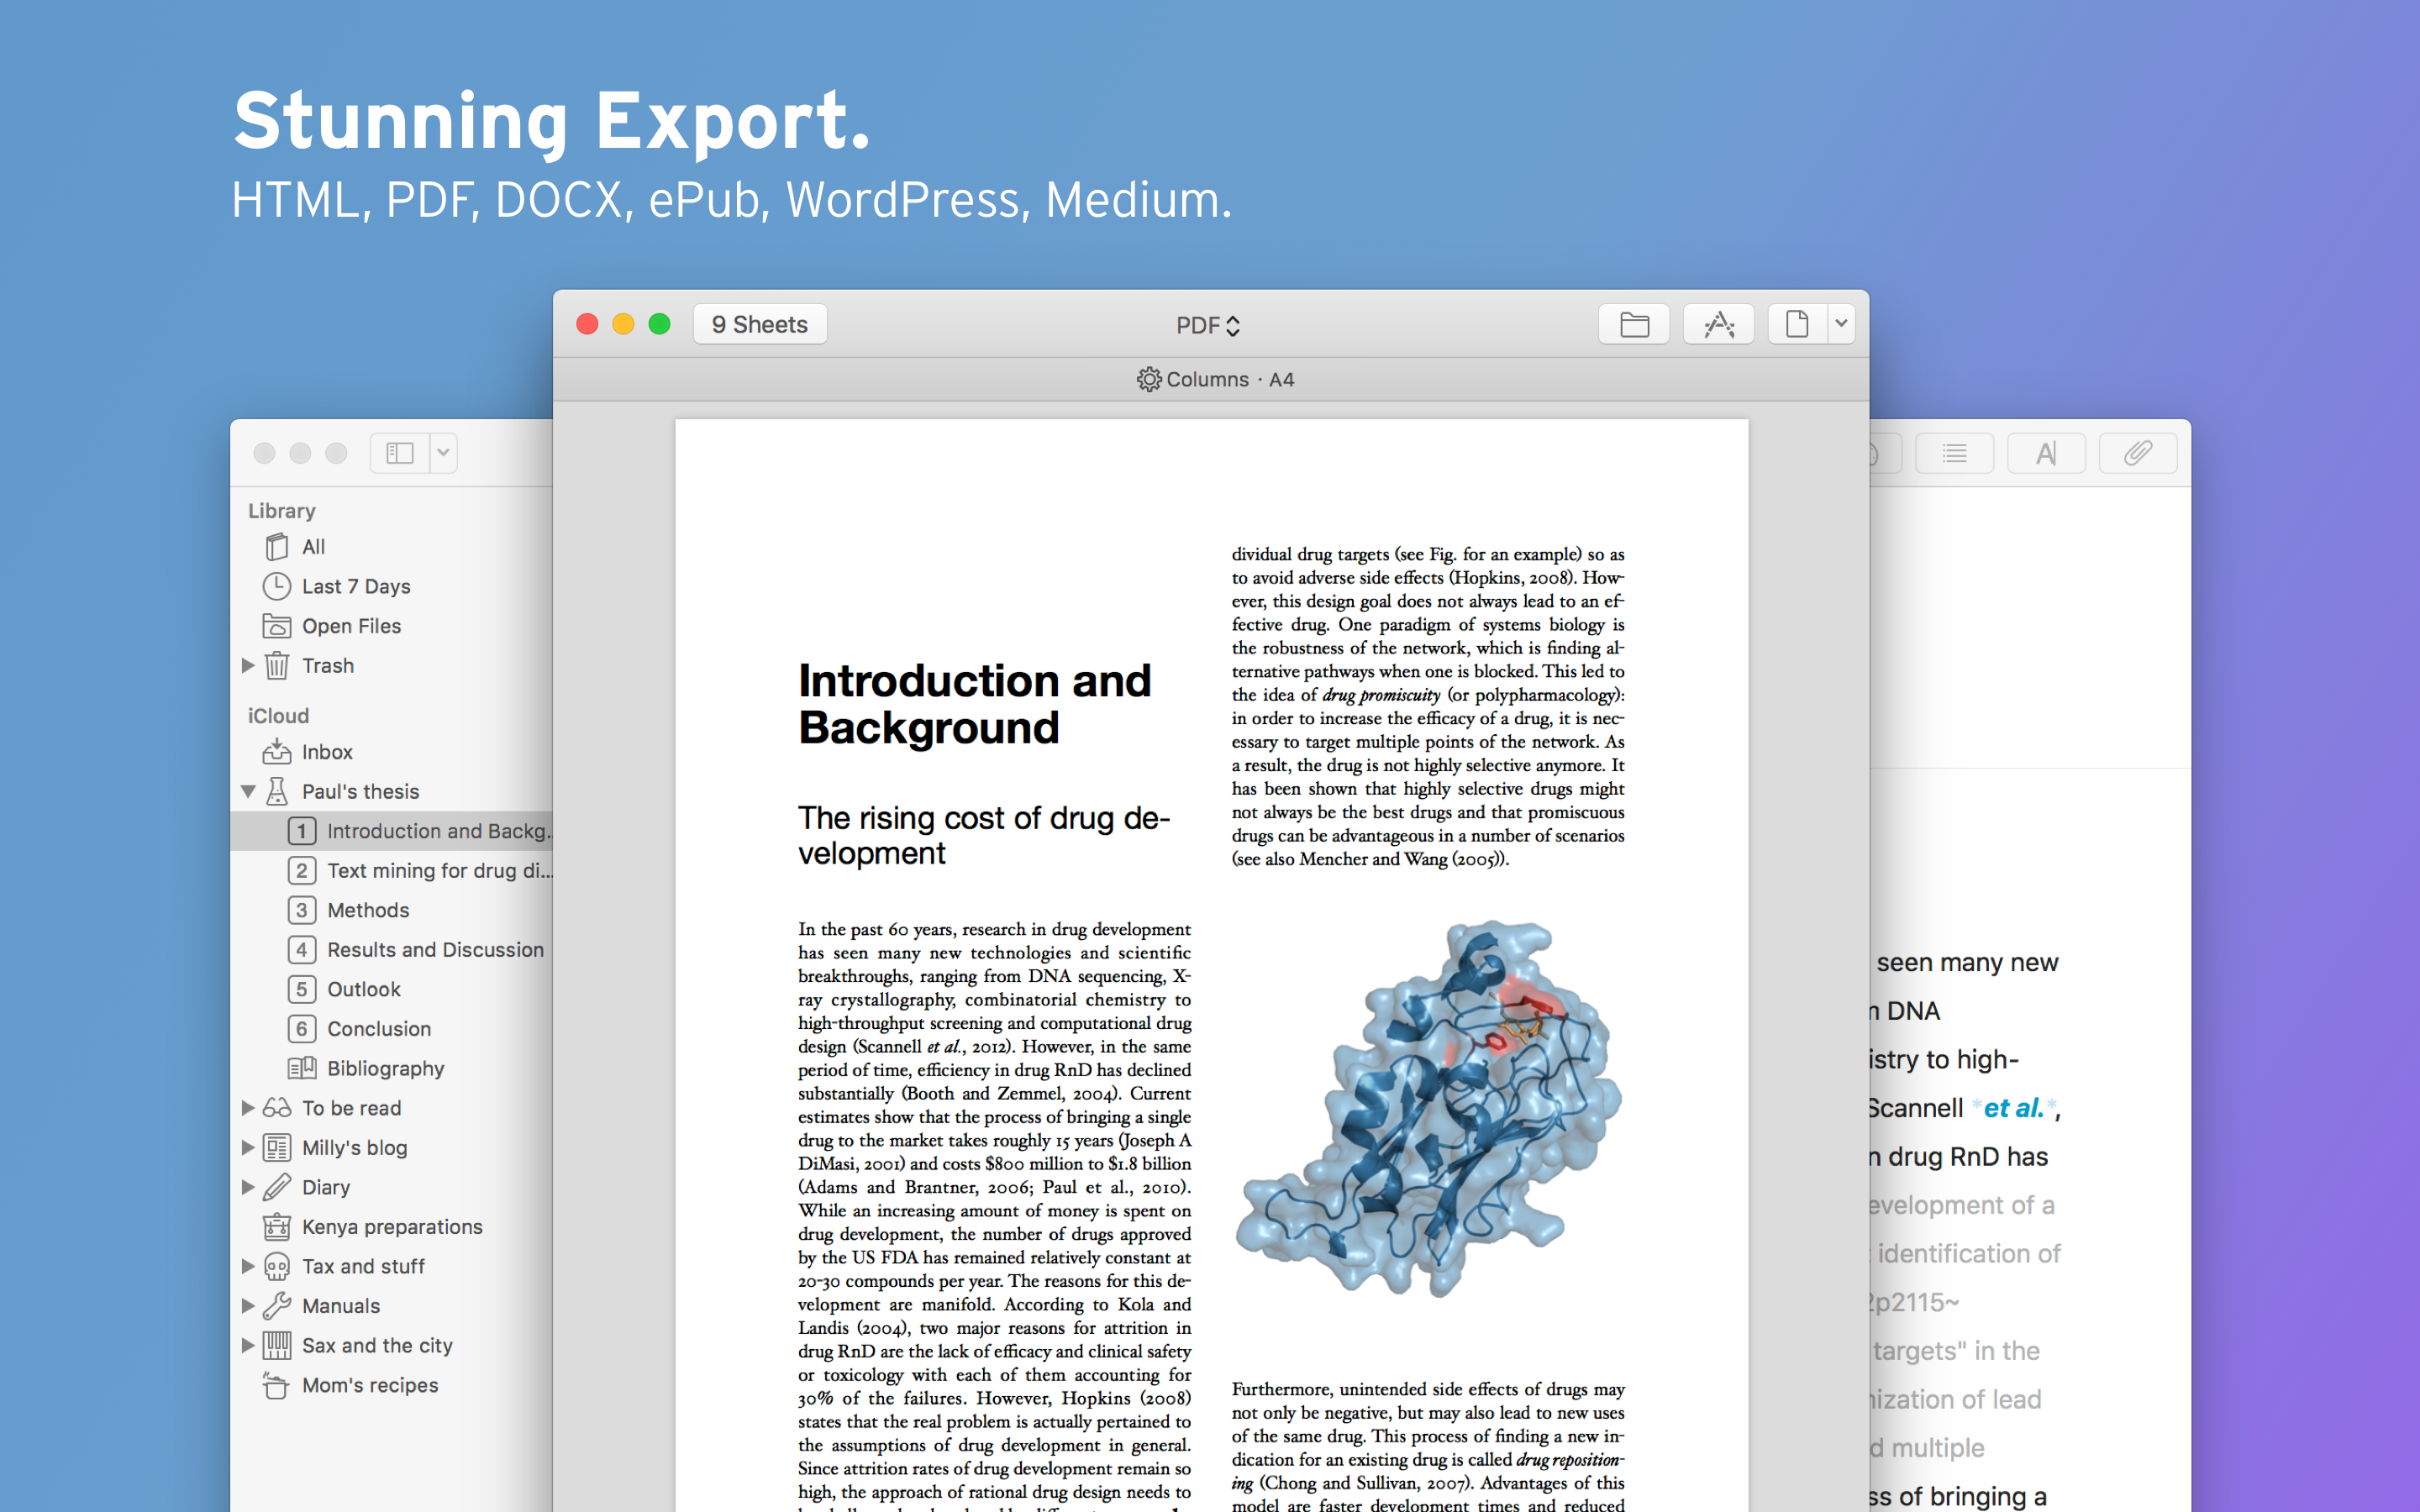 Stunning export your text to HTML, PDF, DOCX, ePUB, WordPress, Medium